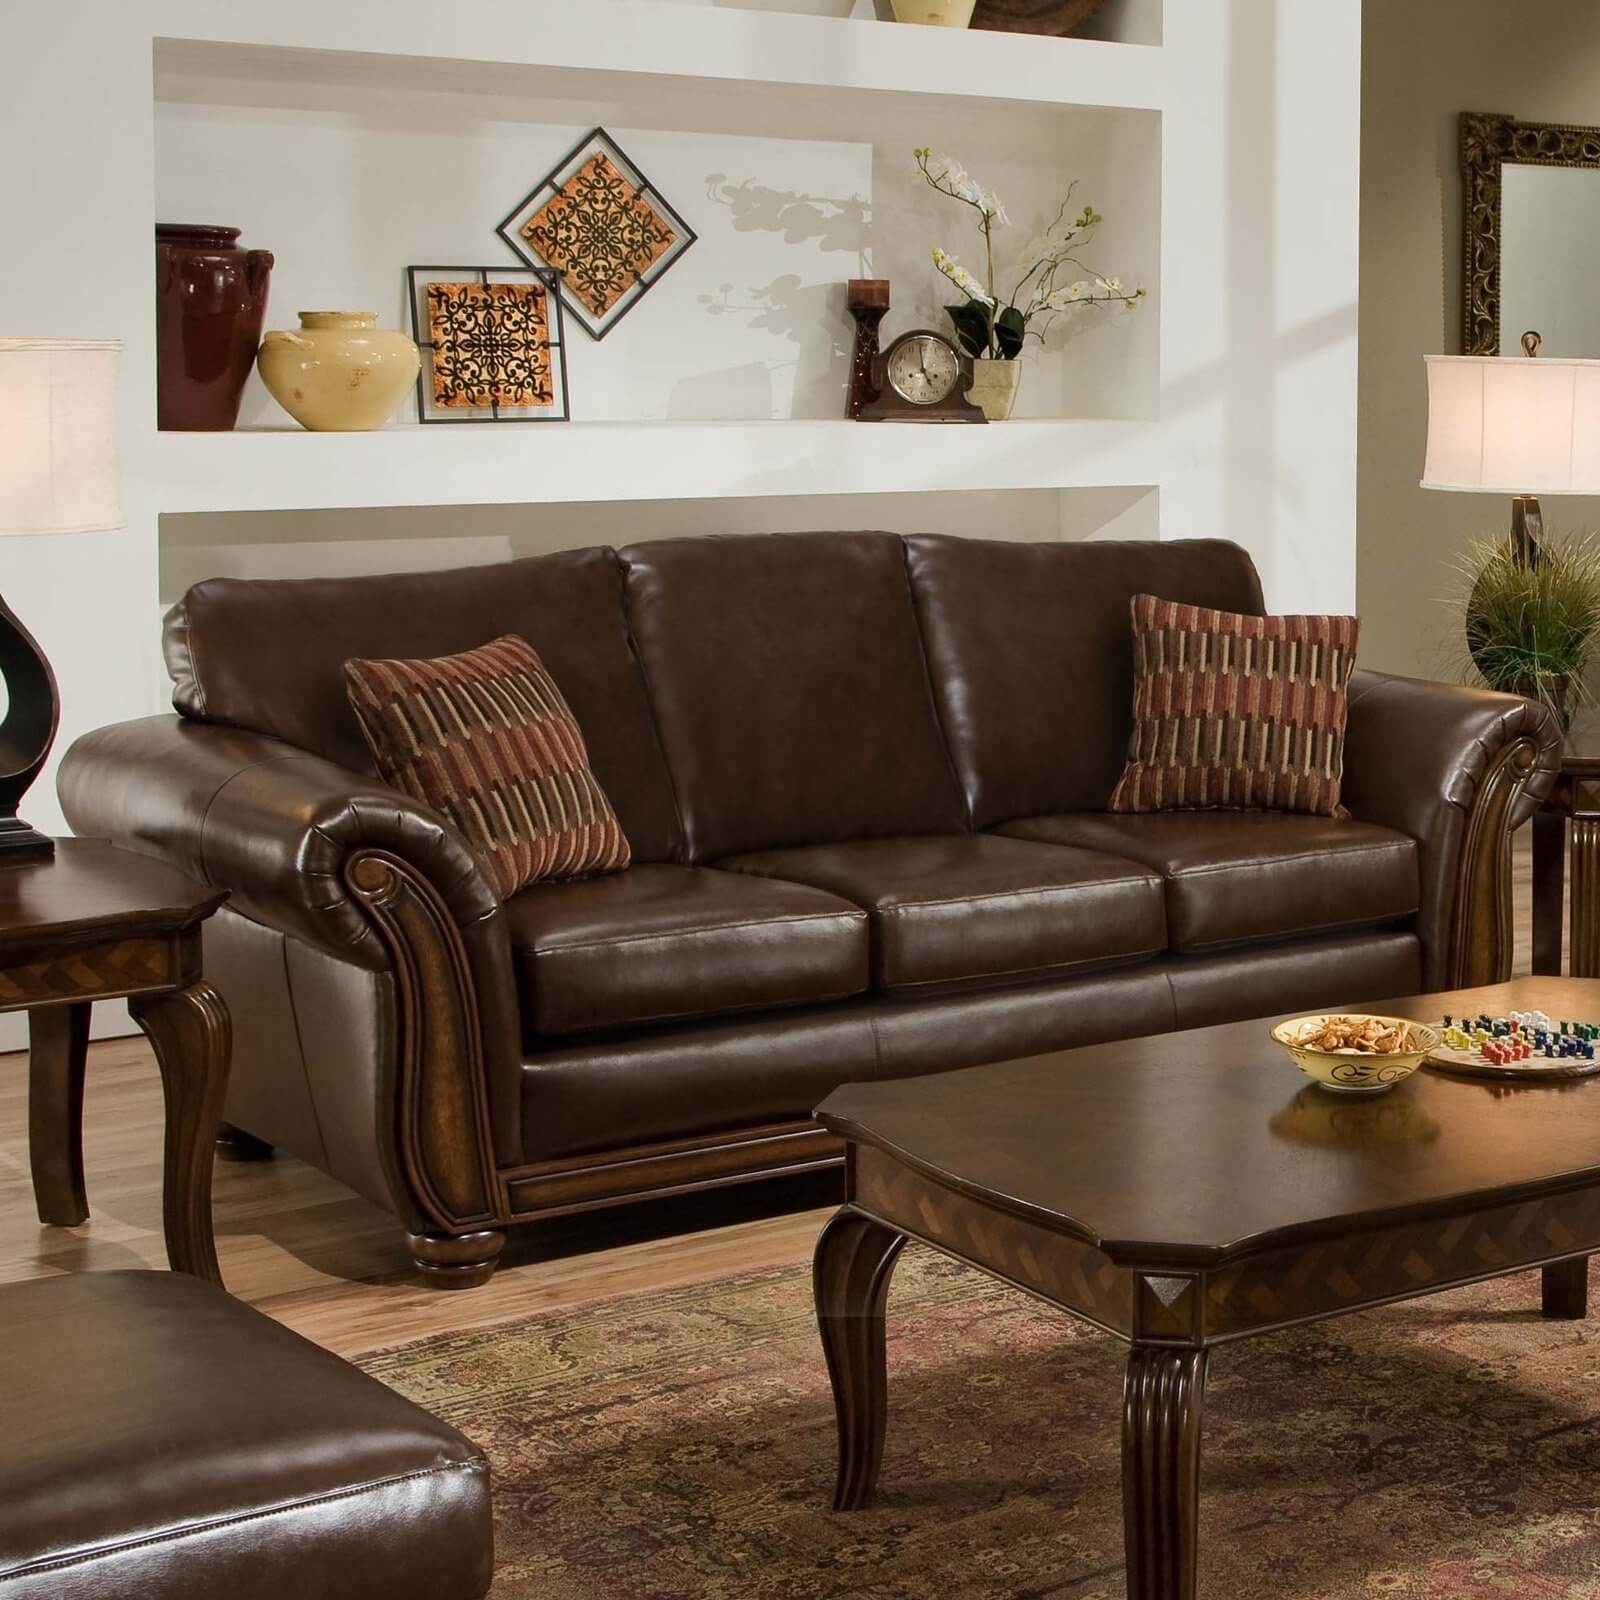 20 Comfortable Living Room Sofas (Many Styles) Within Sofa Chairs For Living Room (View 13 of 15)